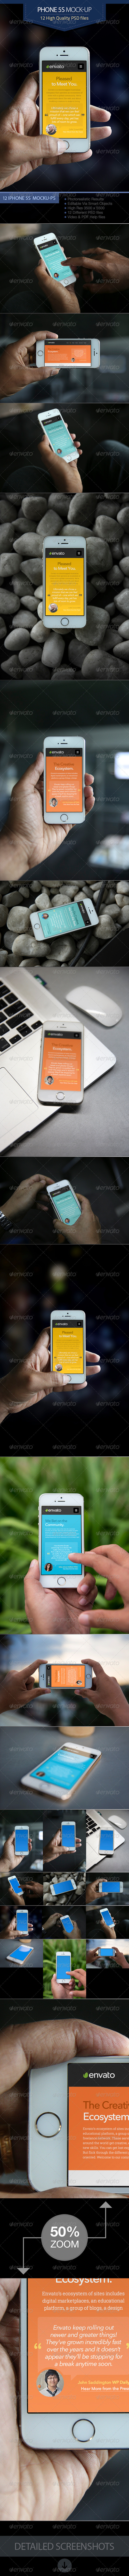 GraphicRiver Phone Mock-Up 8427151